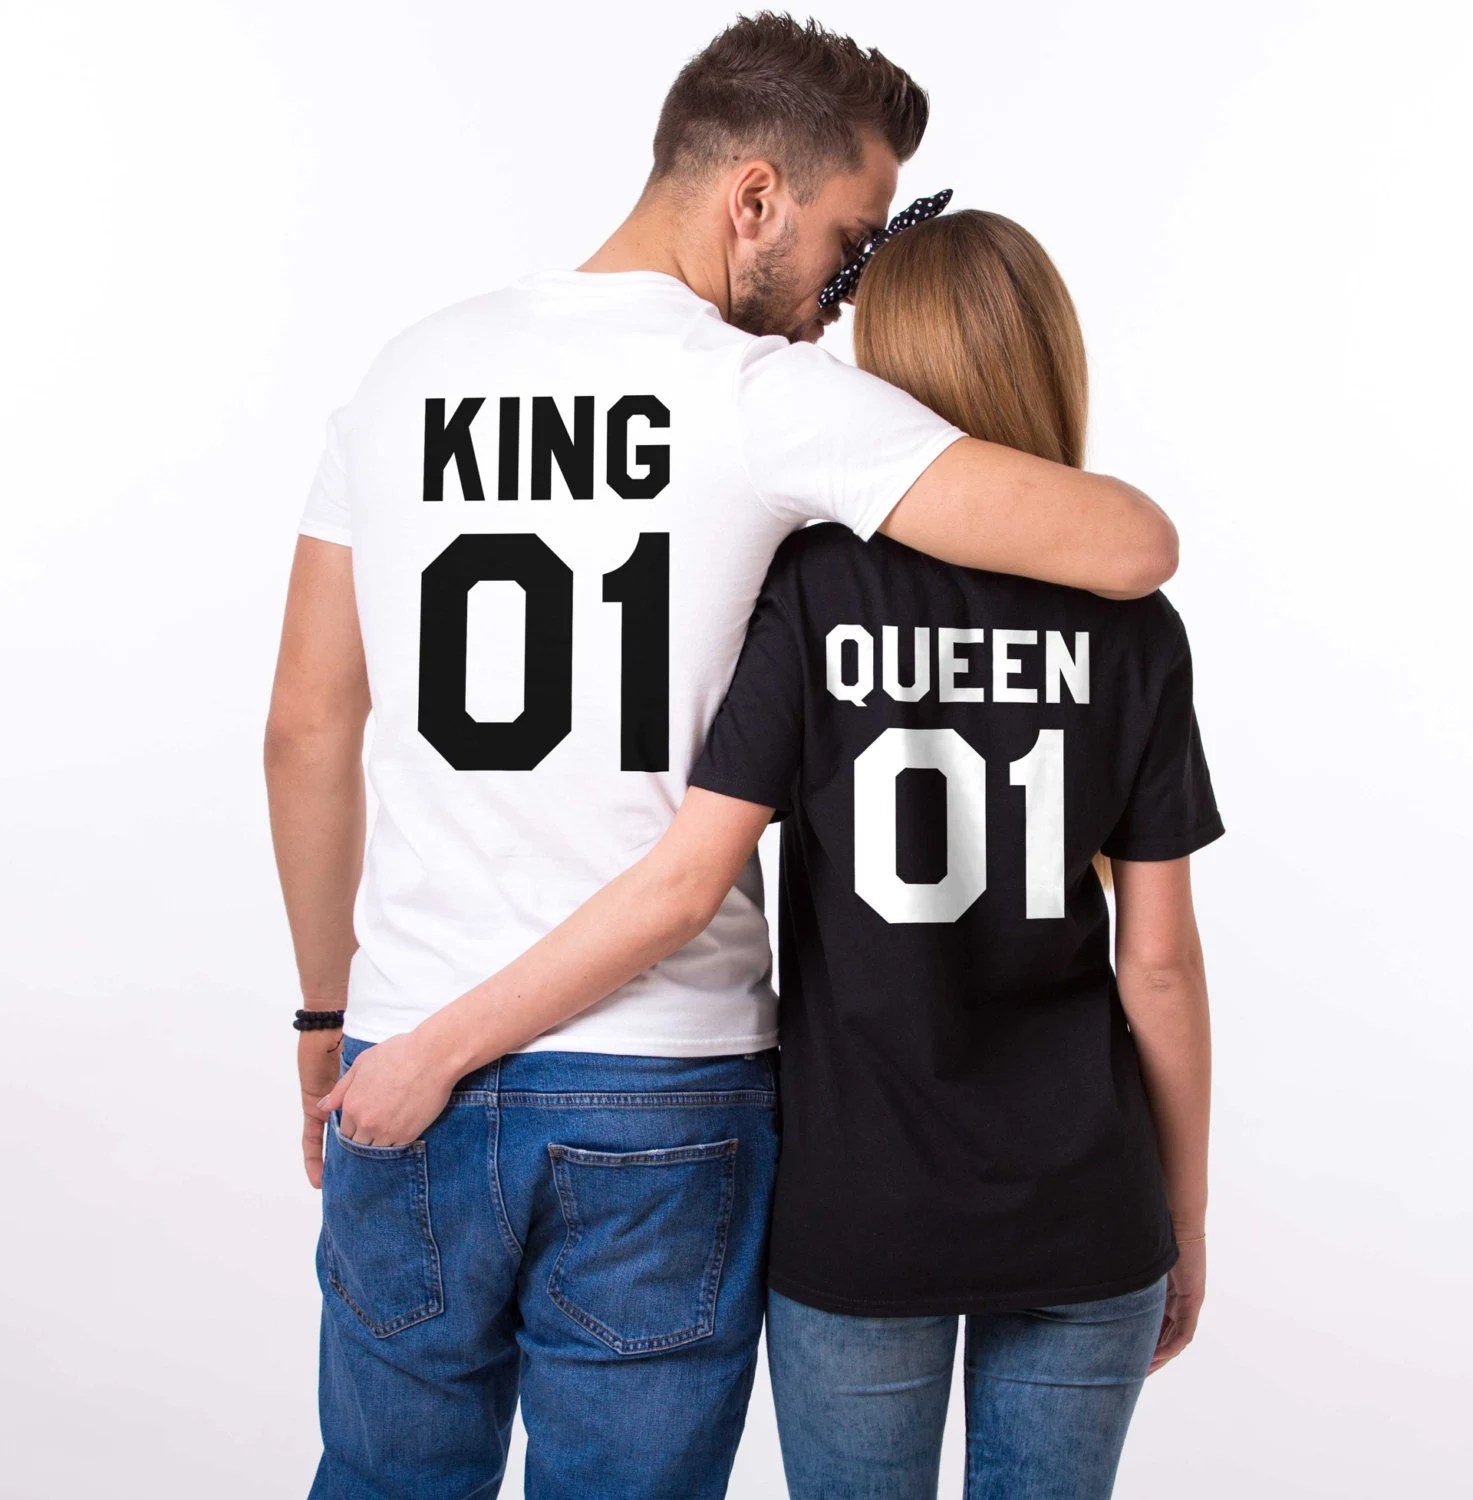 King and Queen shirts King 01 Queen 01 Couples Tshirt Set